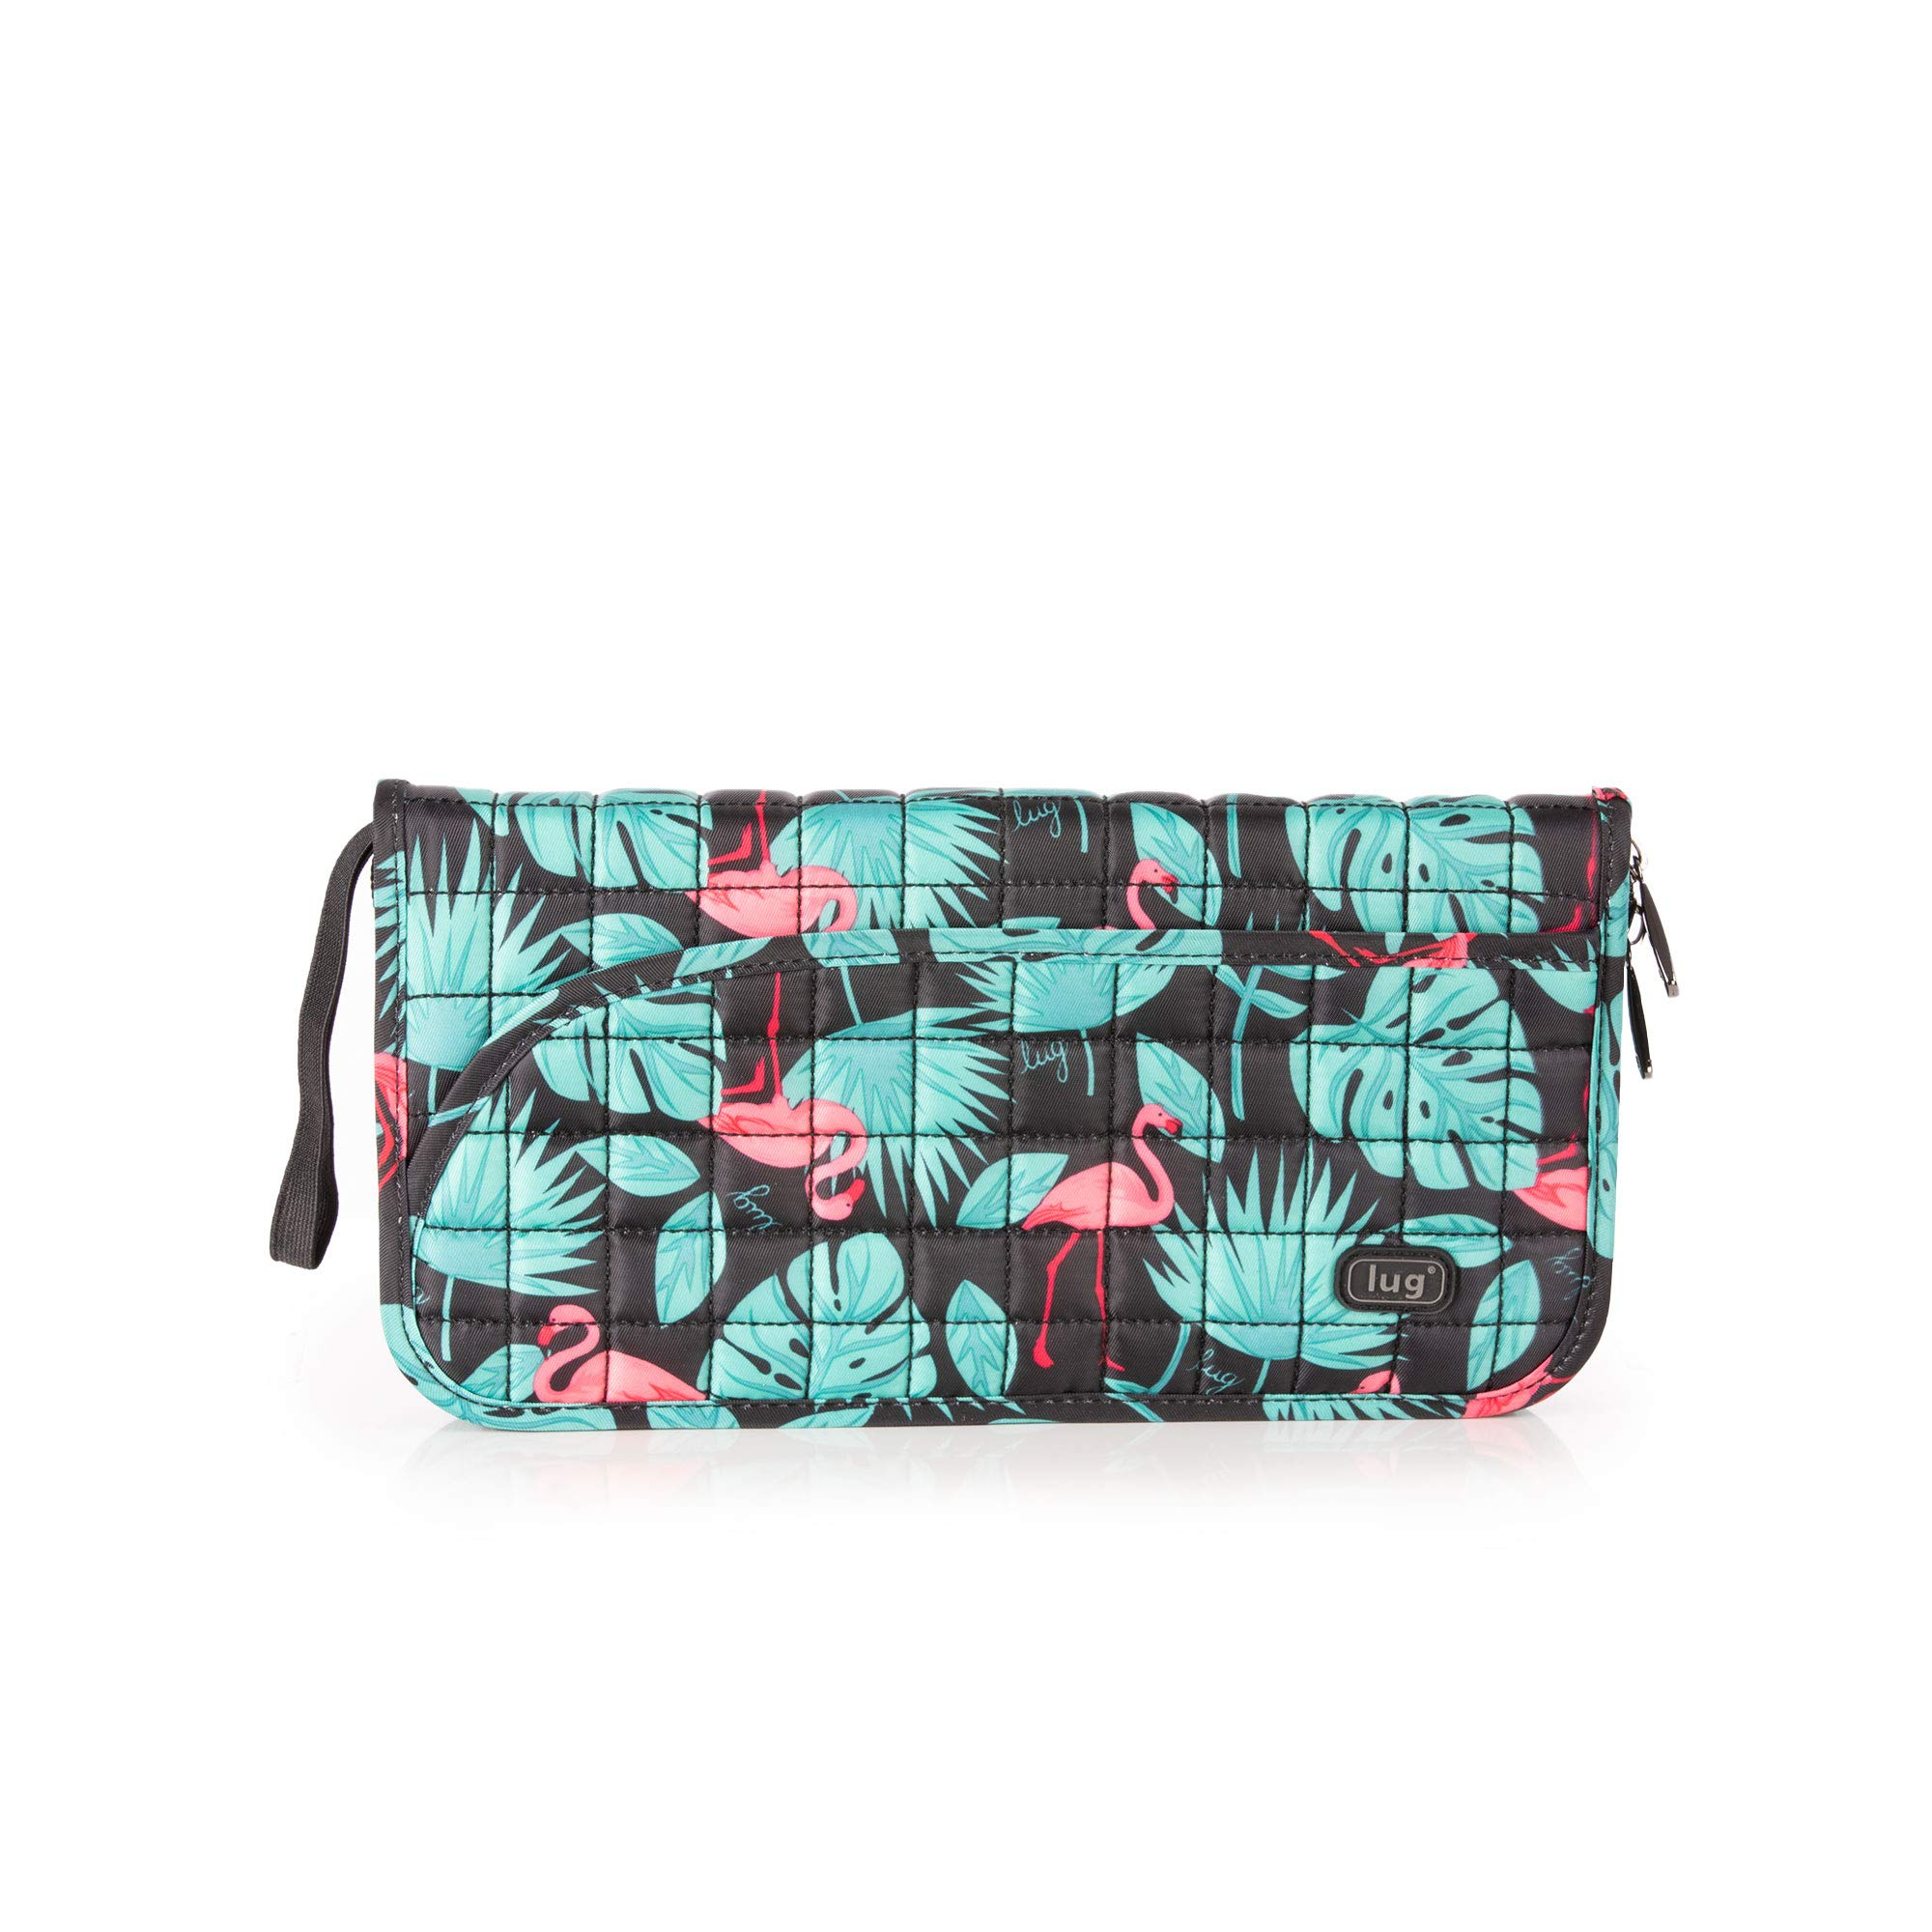 Lug Women's Tango Passport Wallet, Flamingo Black